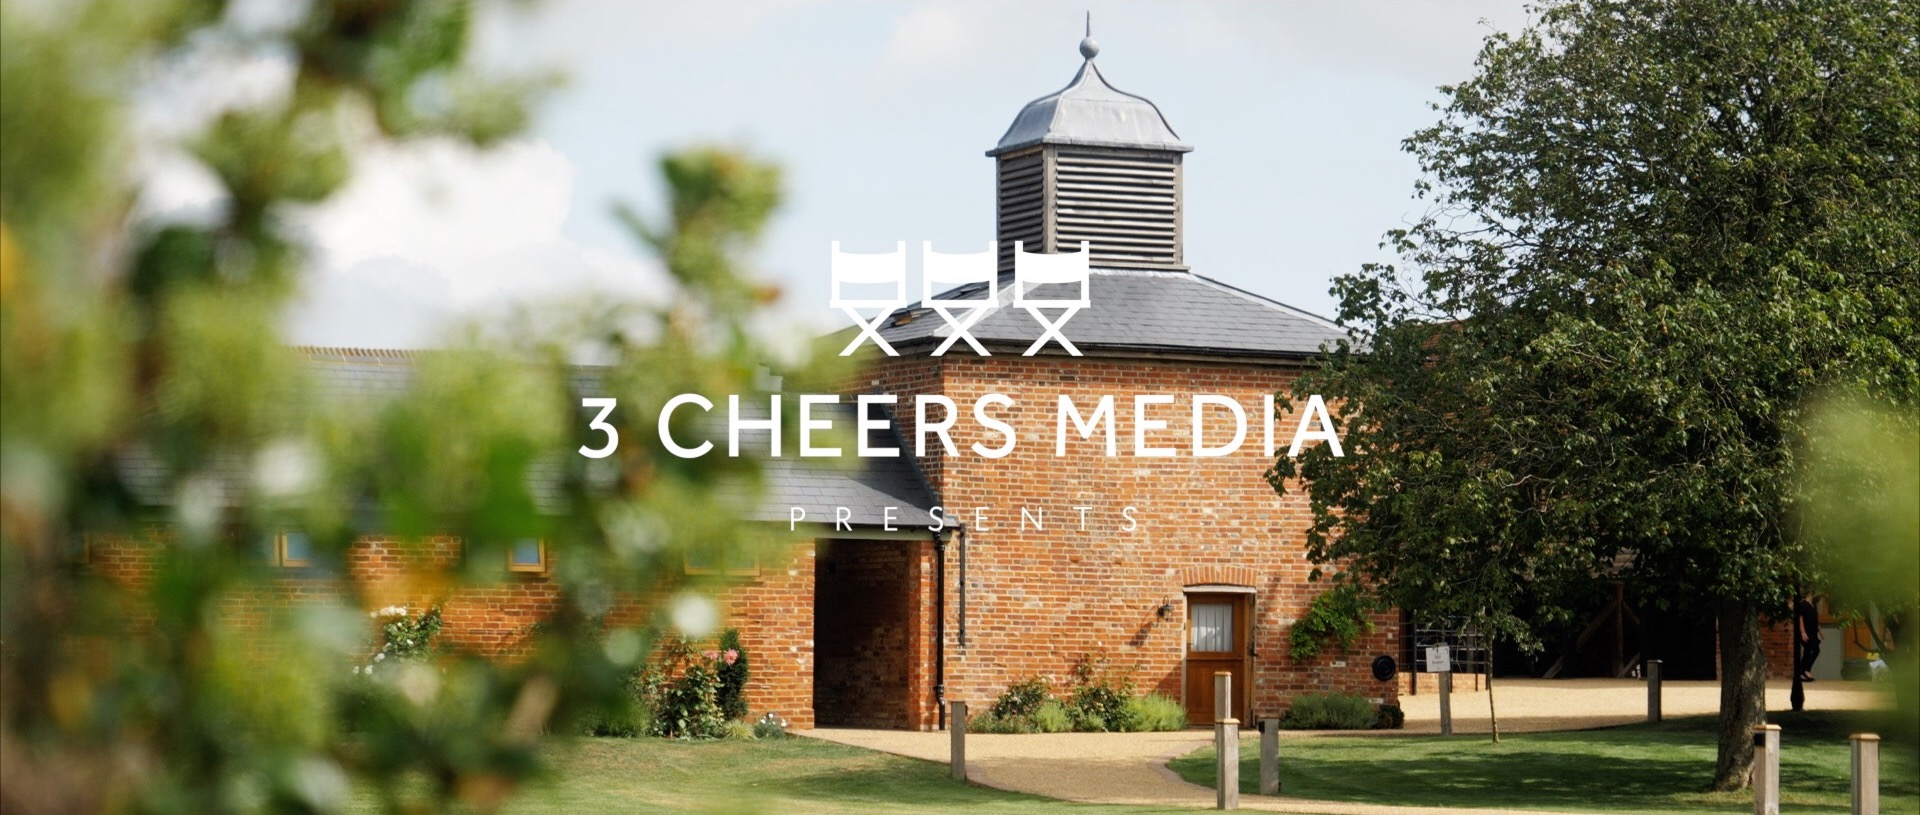 3 Cheers Media Apton Hall.jpg